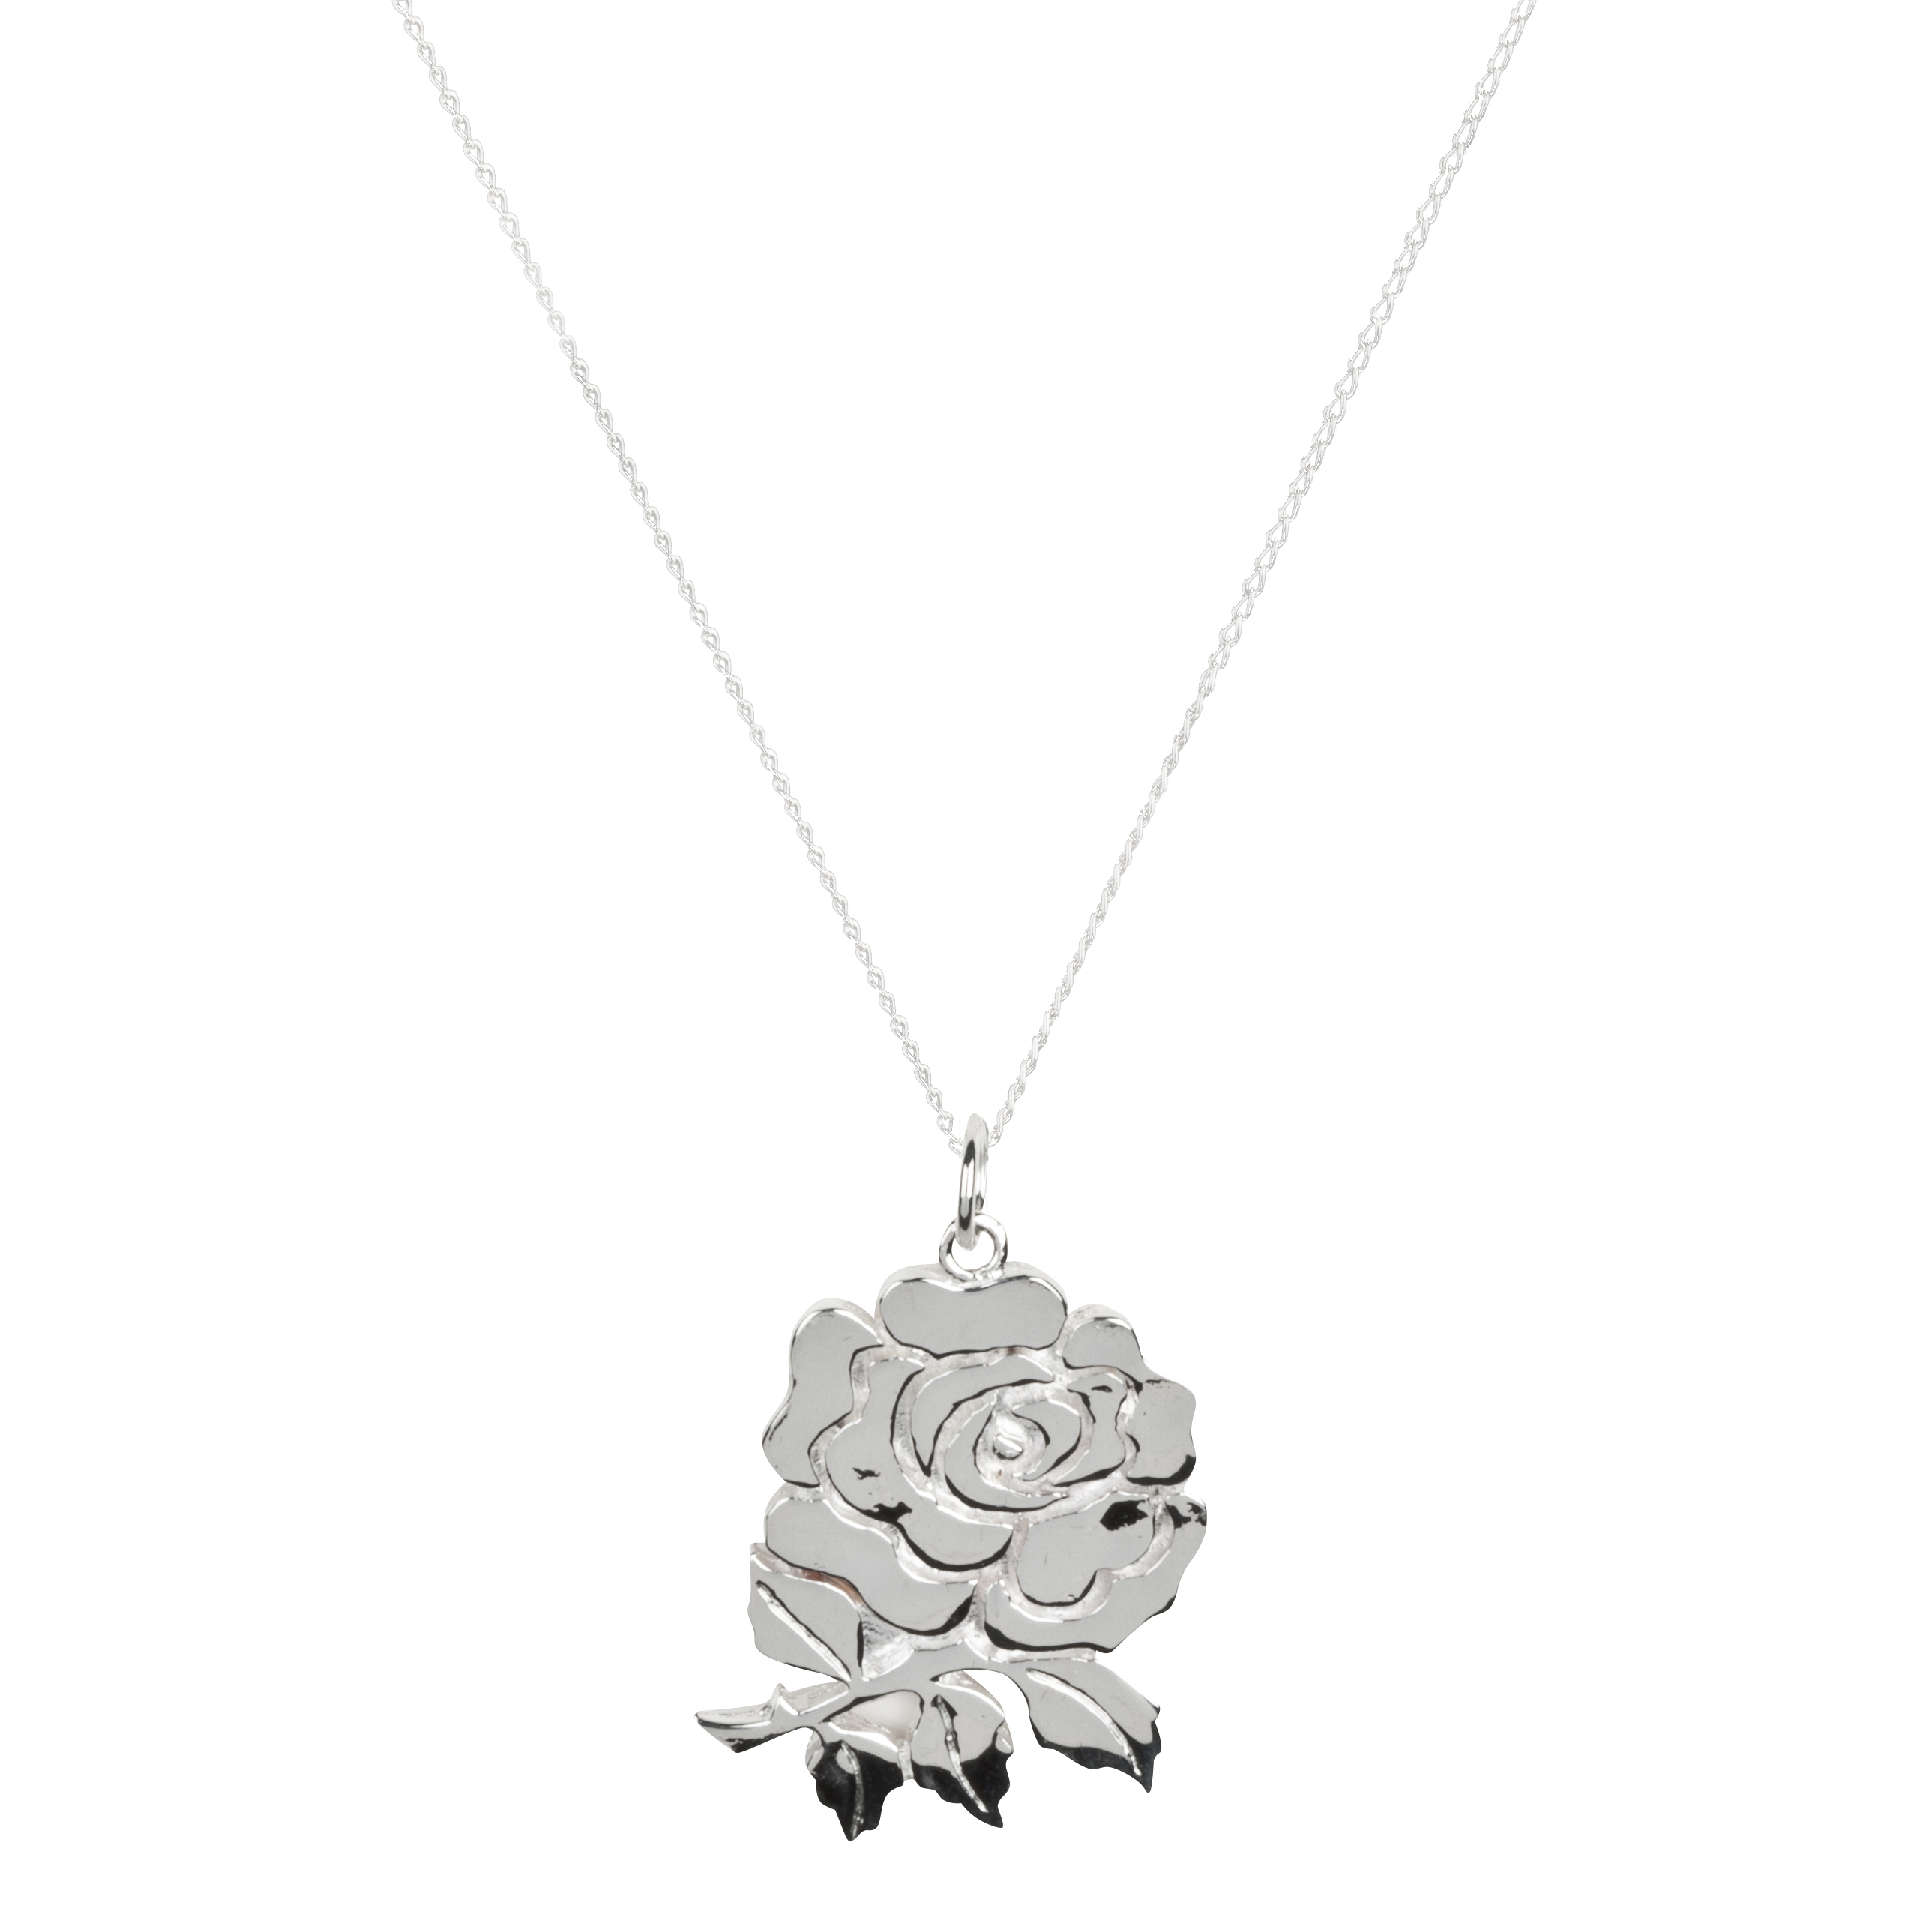 England Rugby Rose Sterling Silver Pendant and Chain